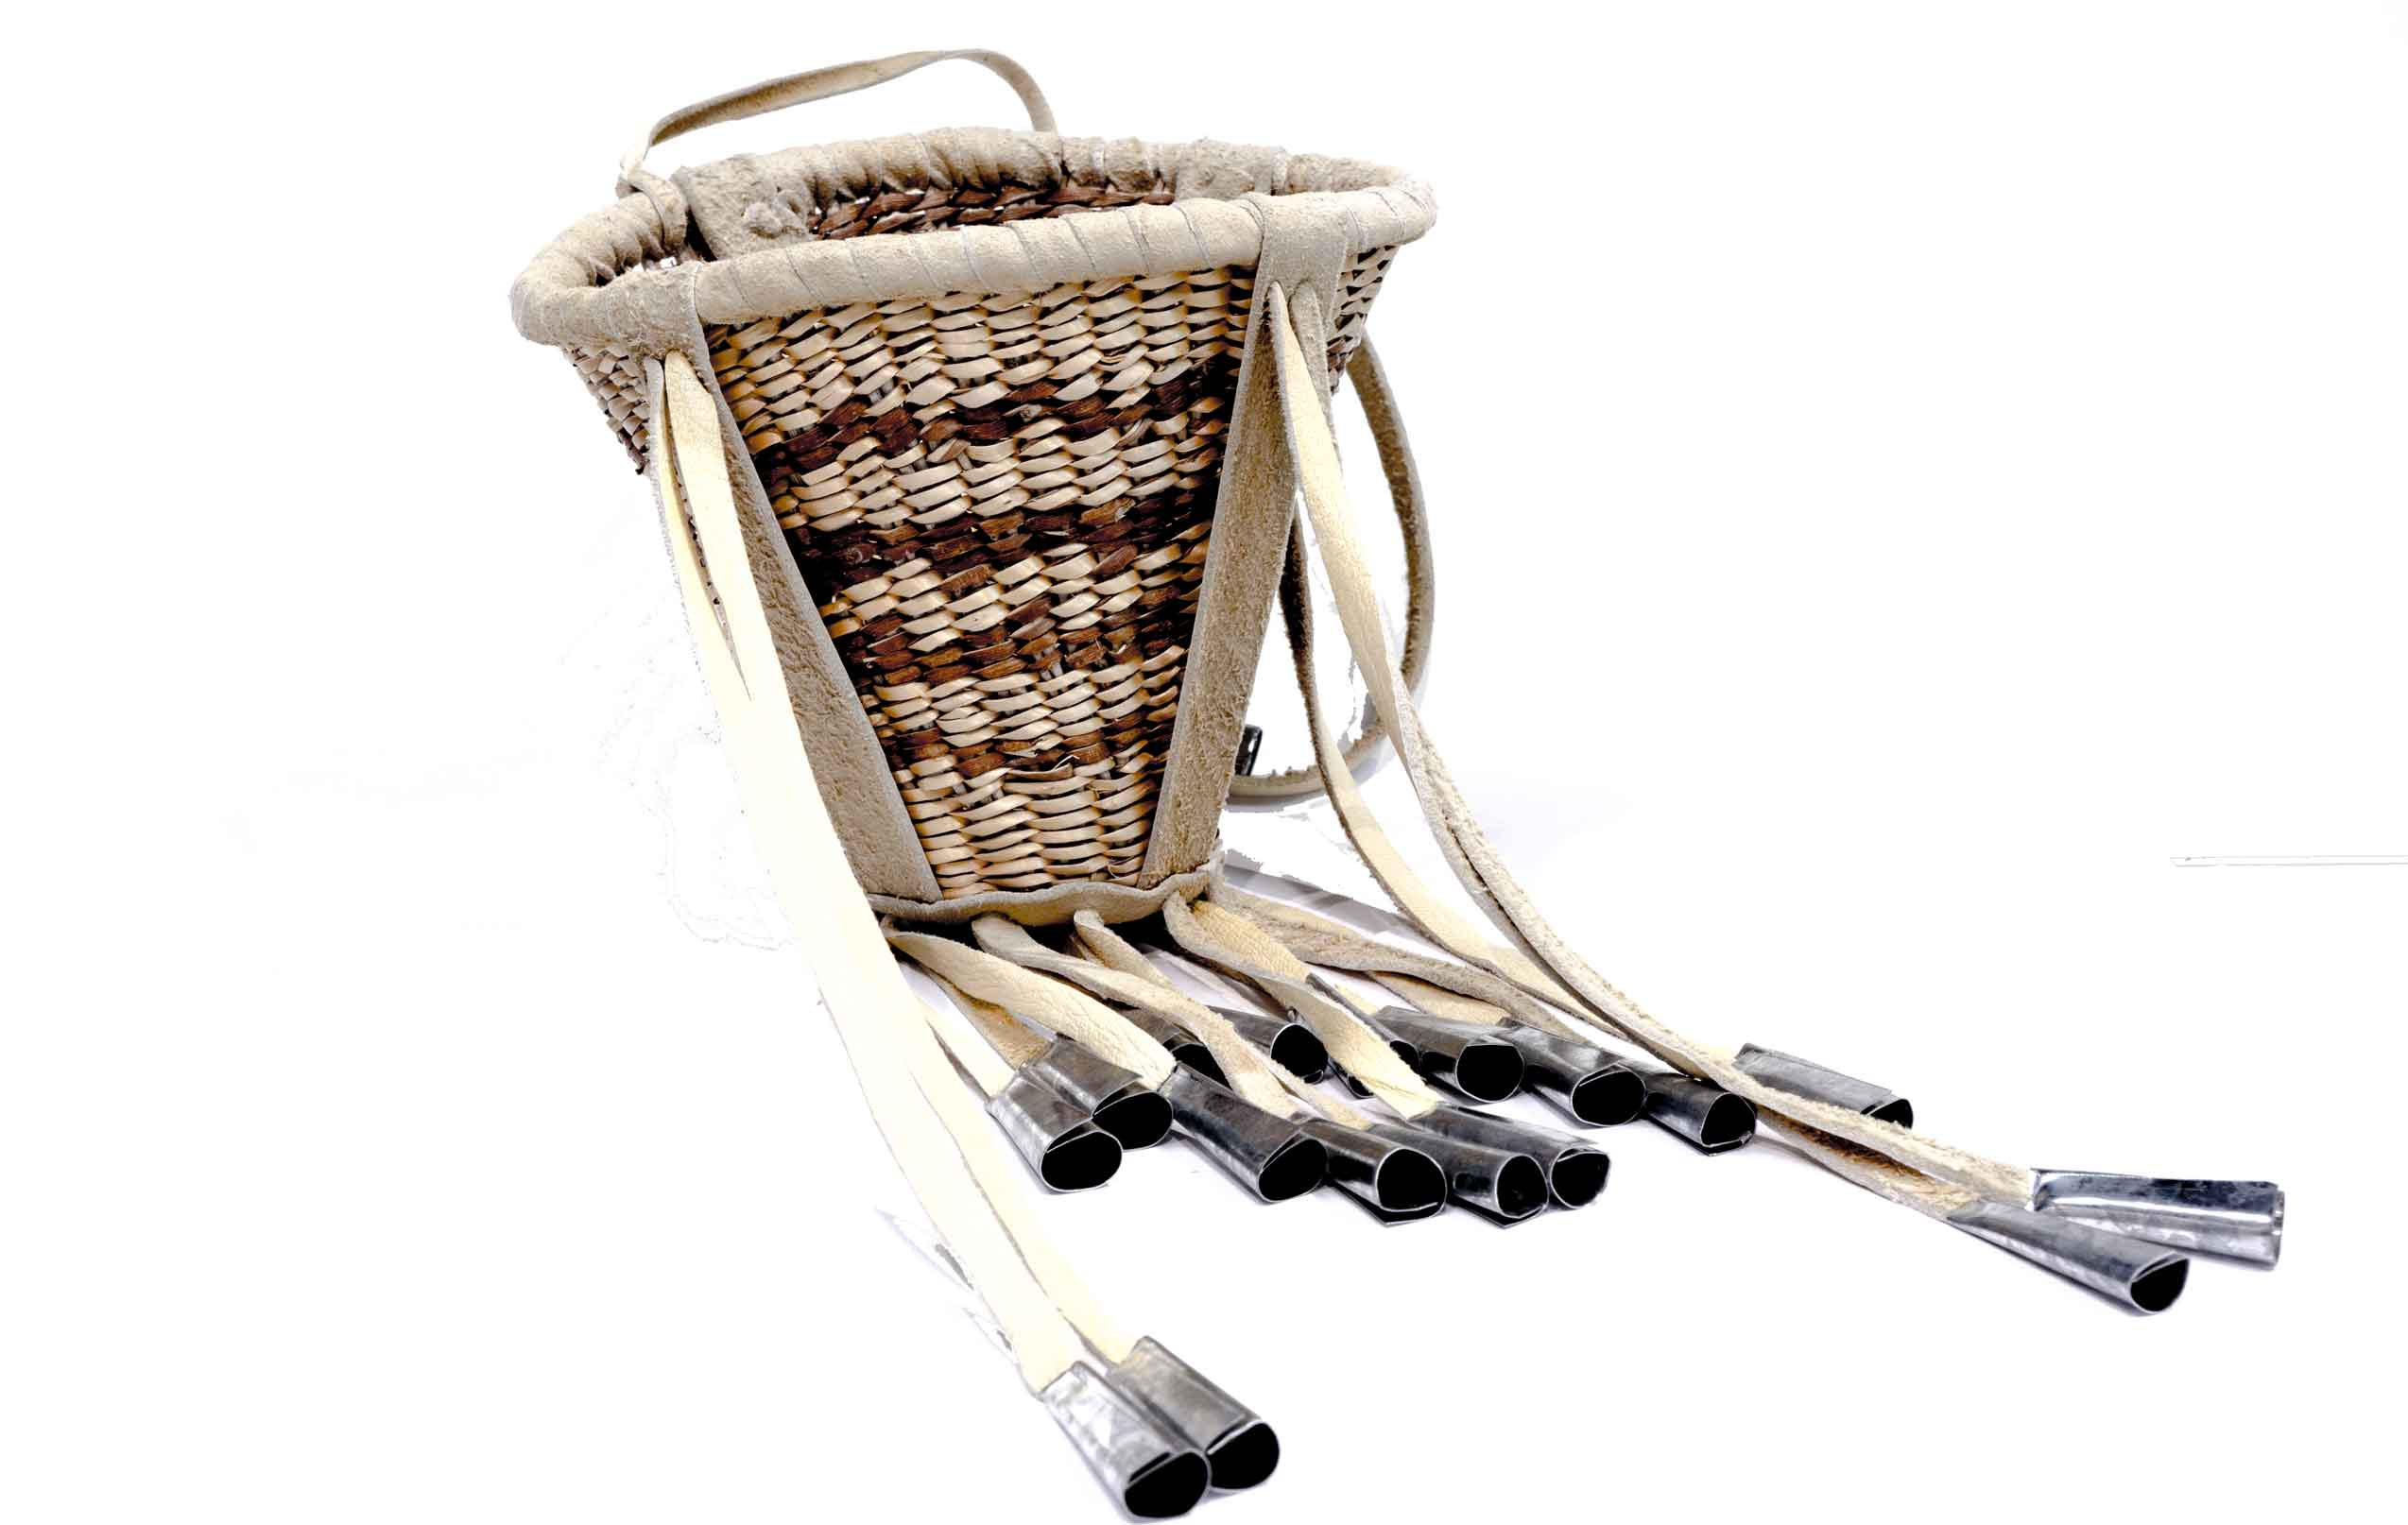 Basket at Our Native Land